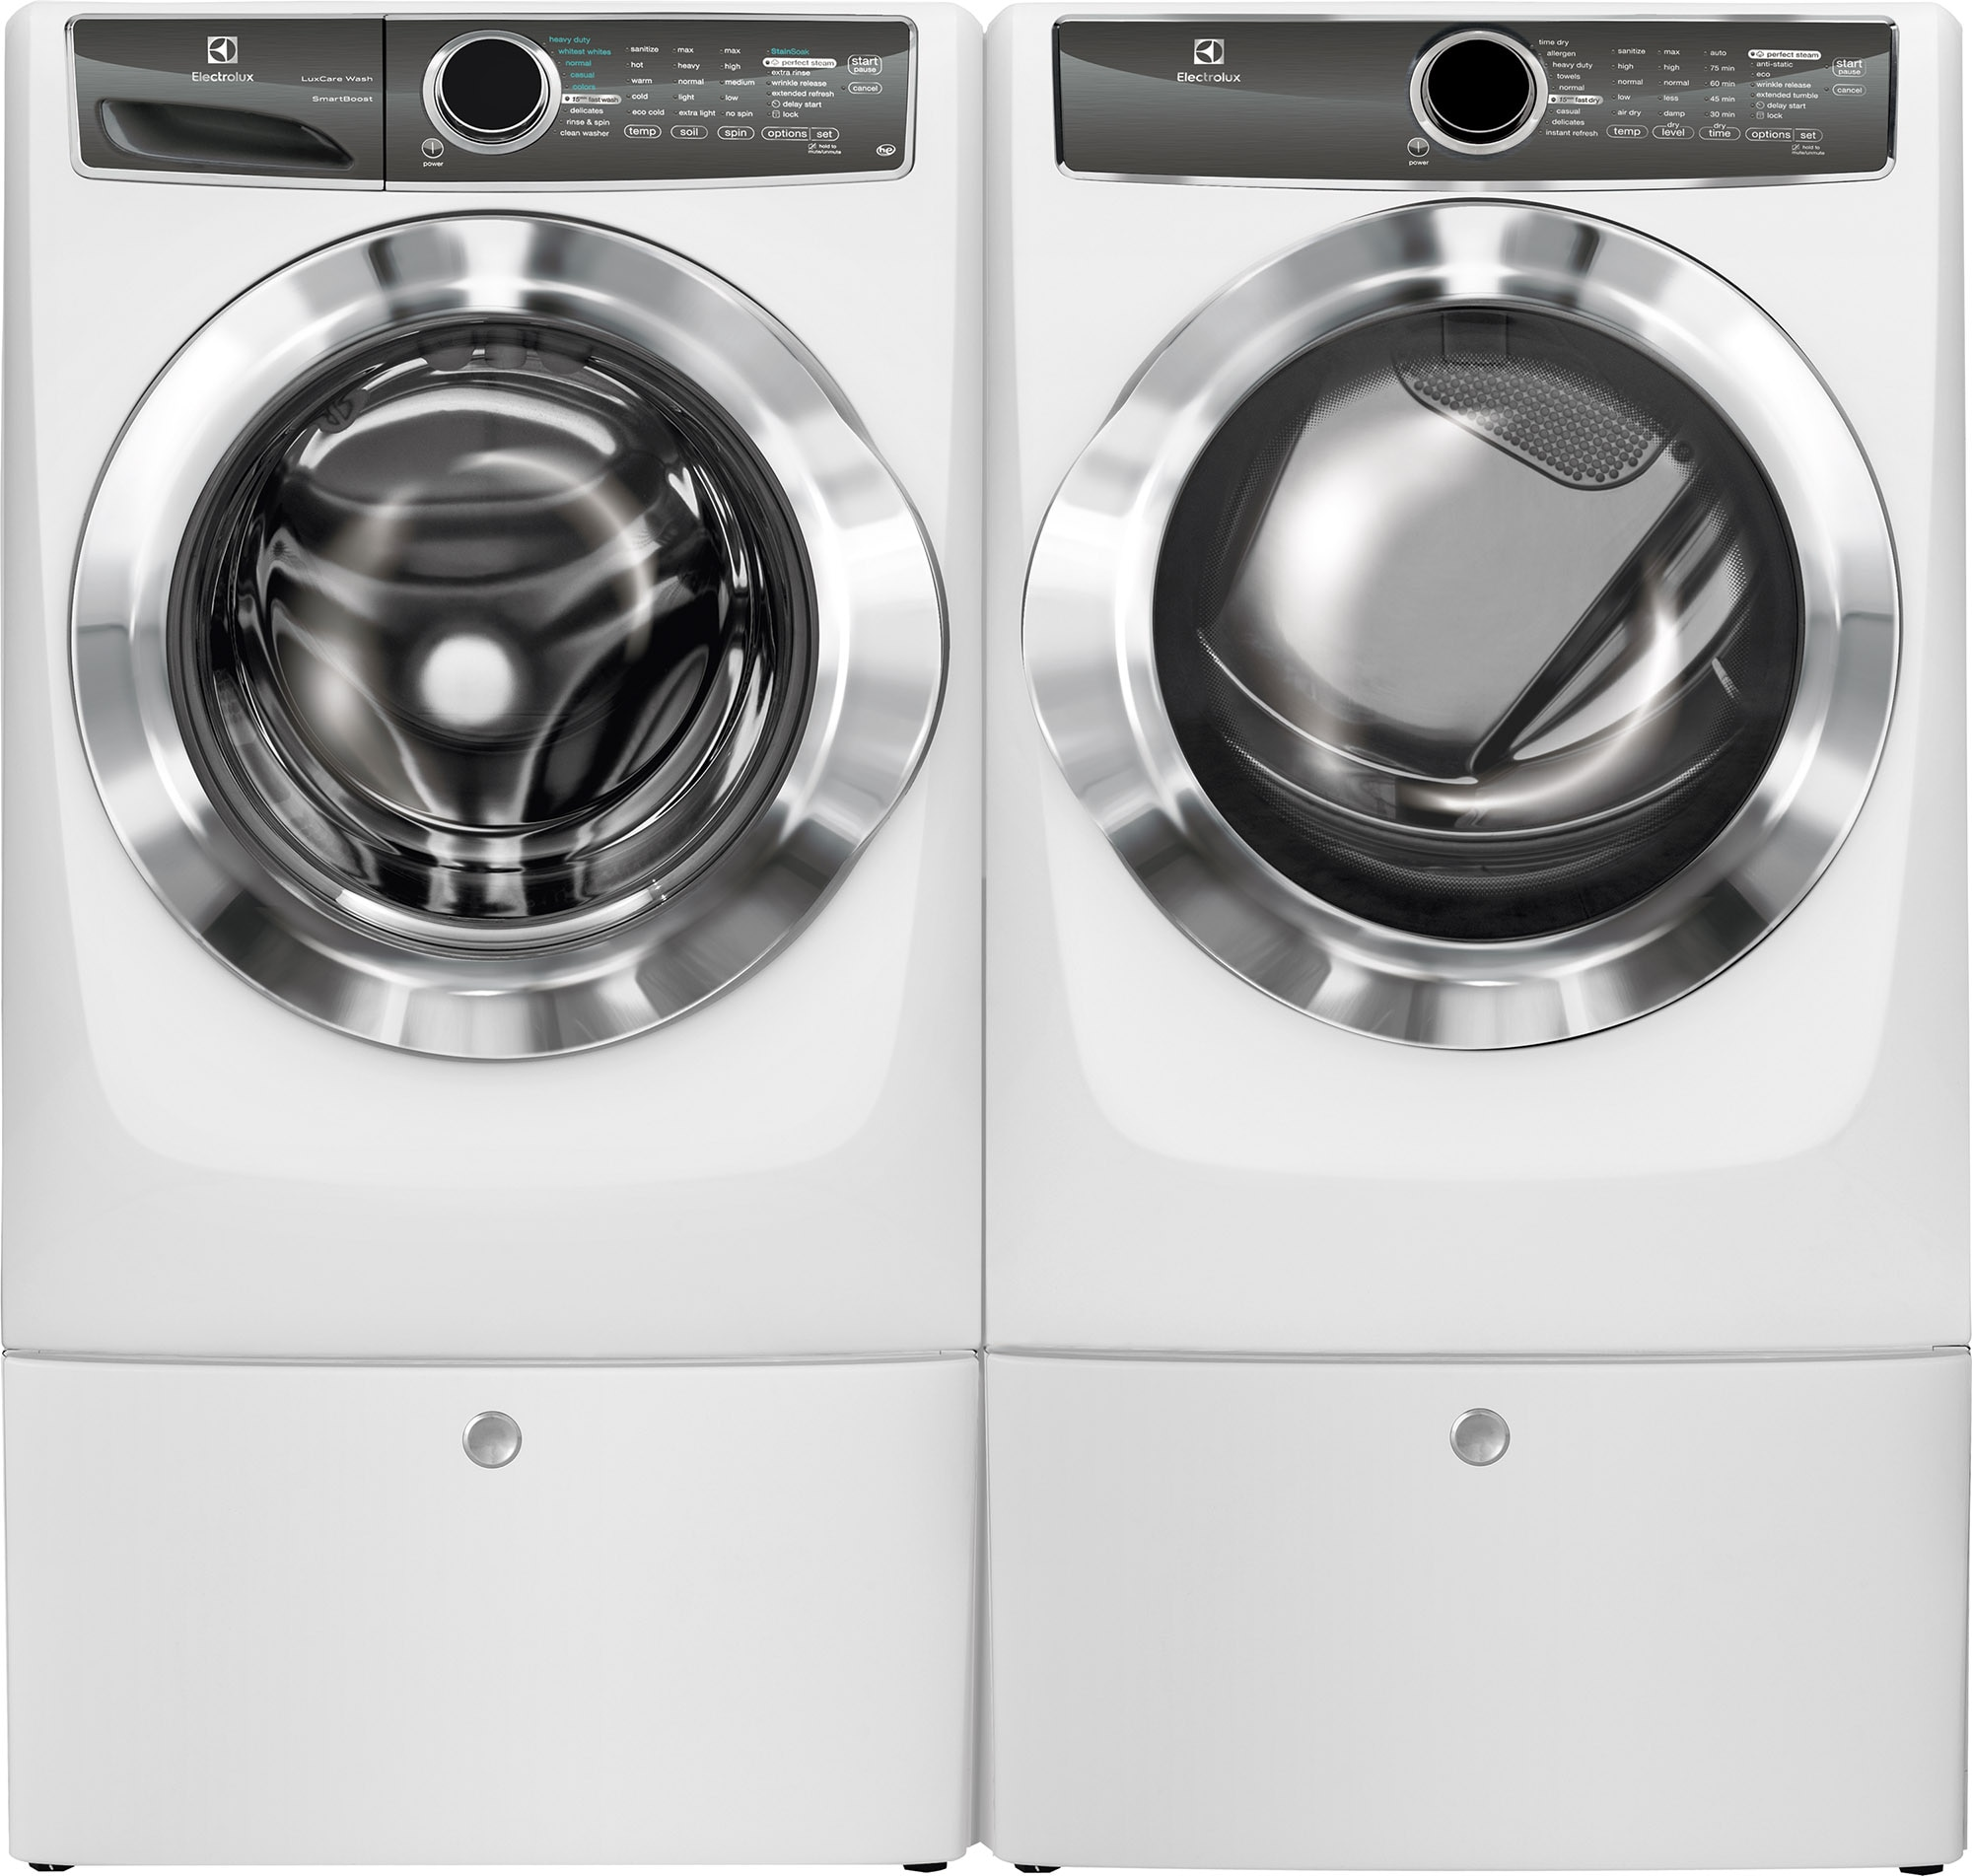 electrolux washer and dryer. Electrolux Washer And Dryer Pair